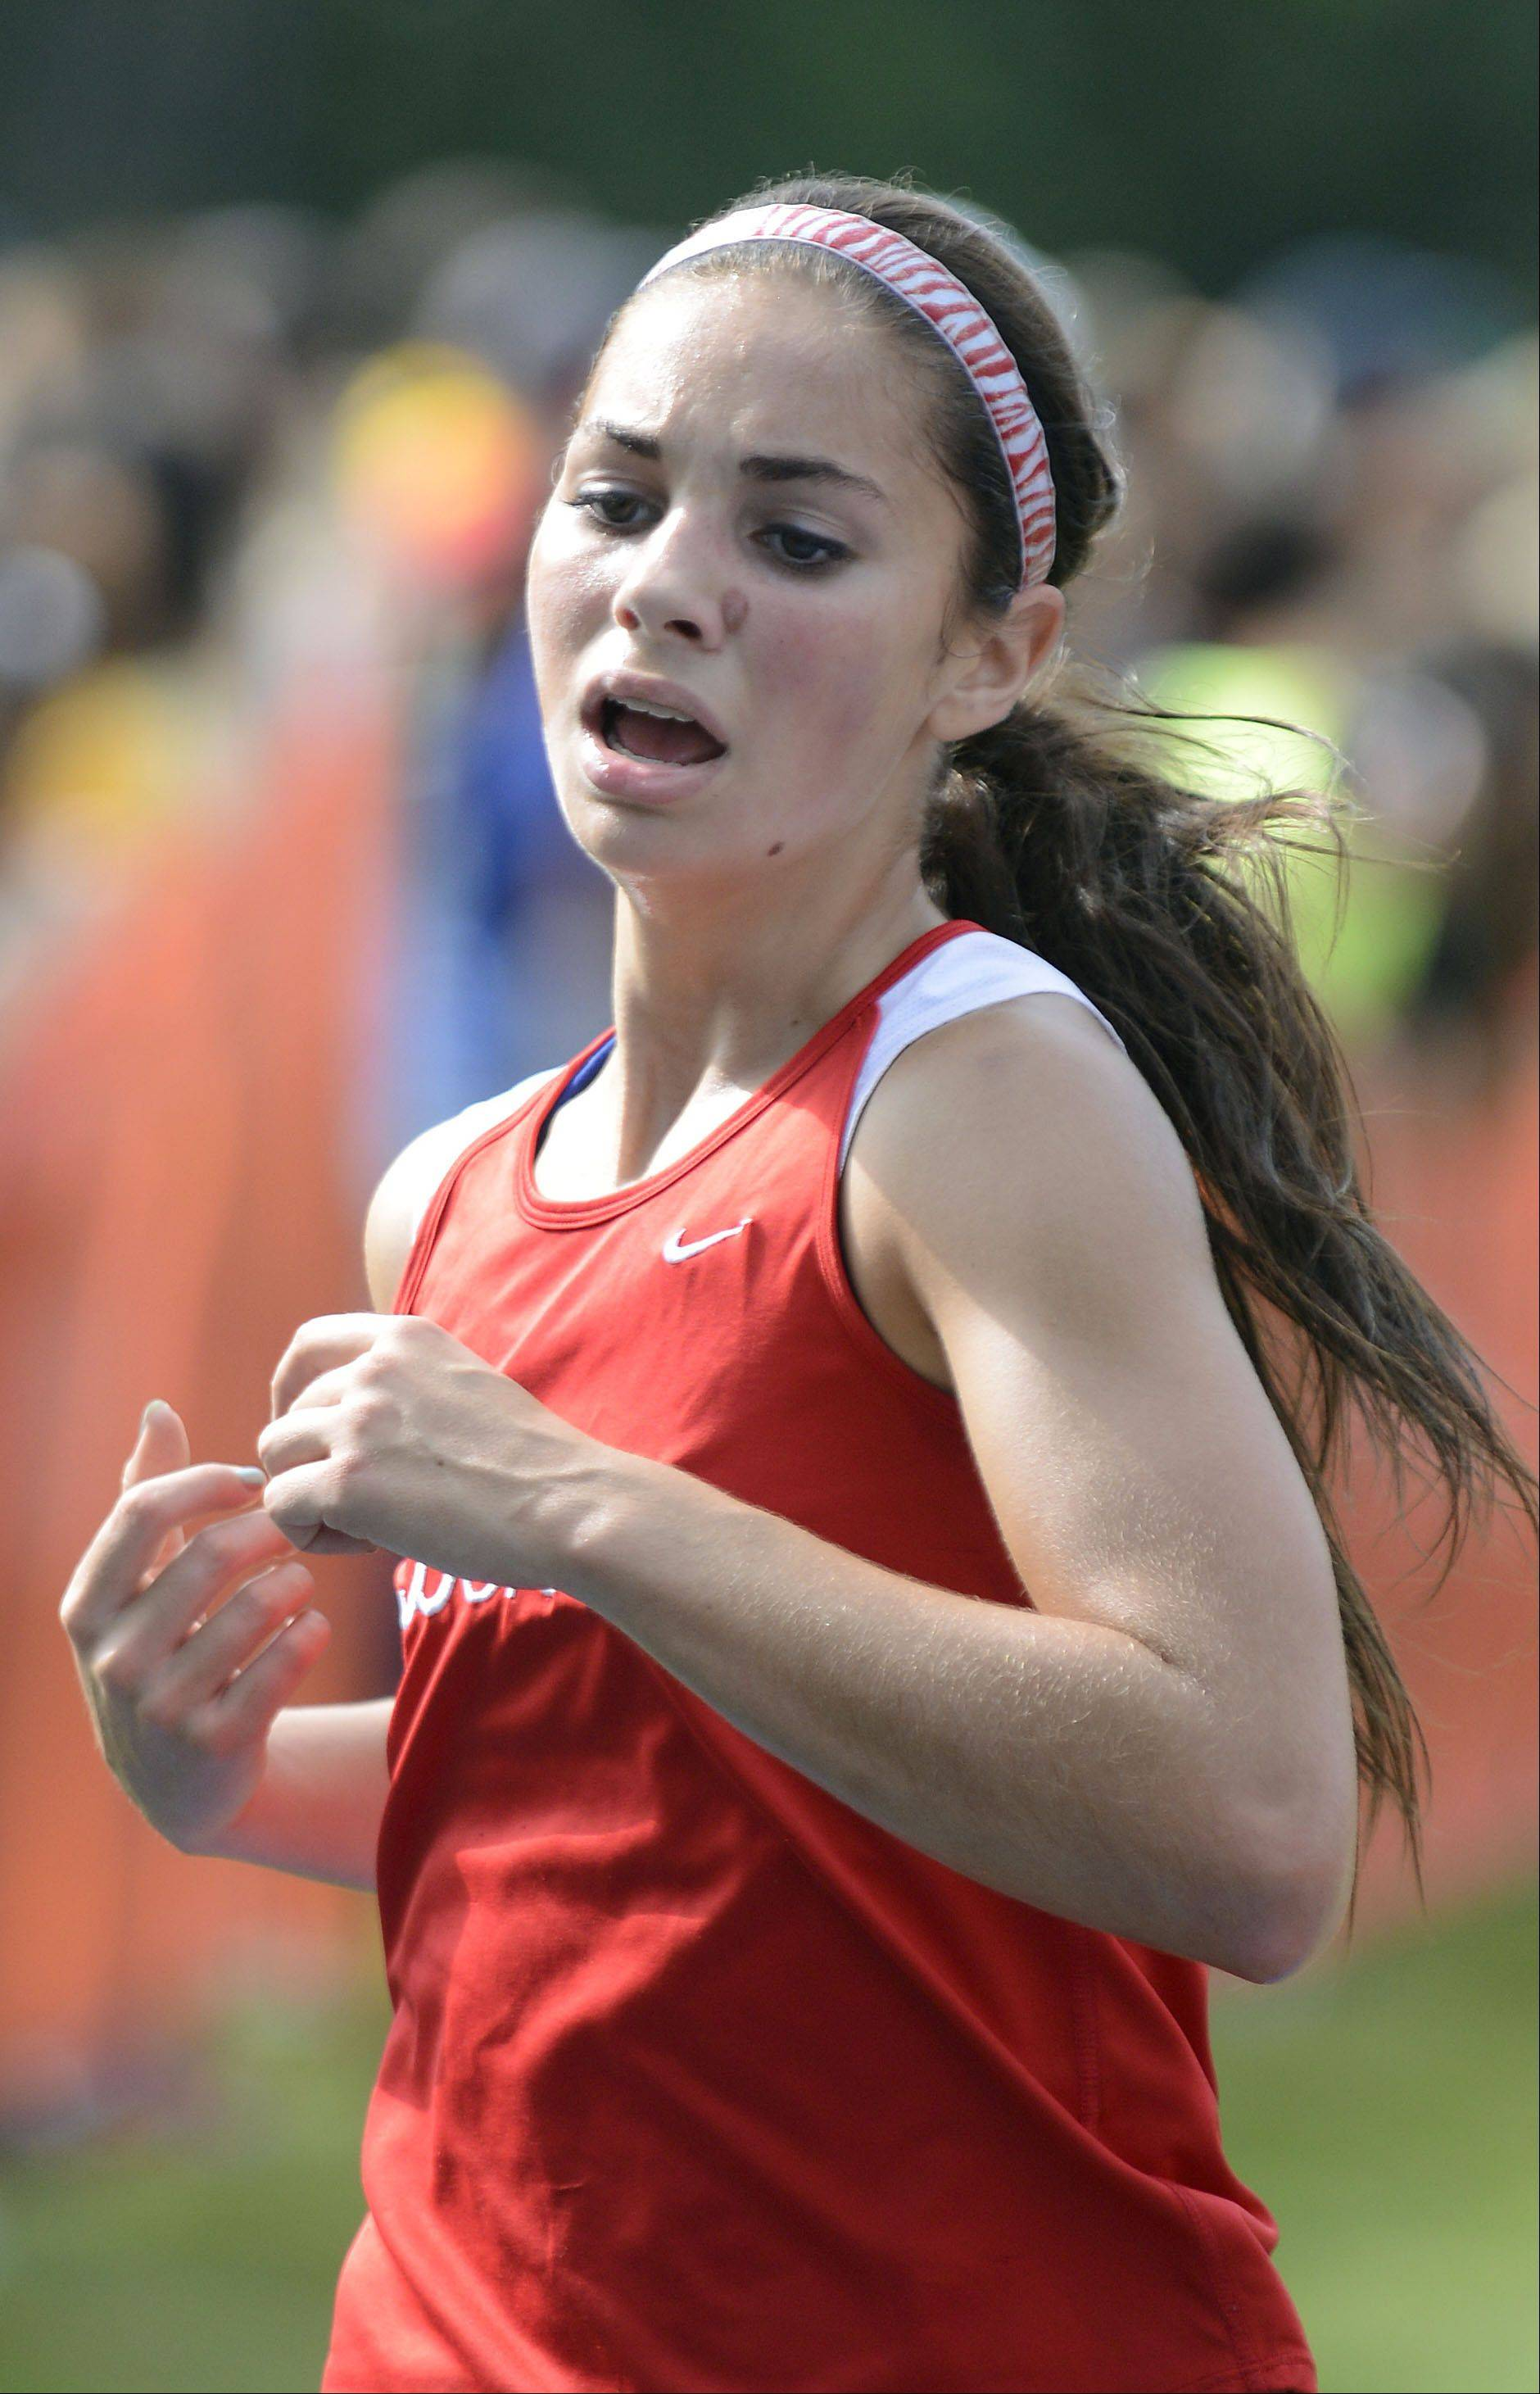 Benet's Elli Chalkey nears the finish line in the meet at Leroy Oakes Forest Preserve in St. Charles on Saturday, September 7.